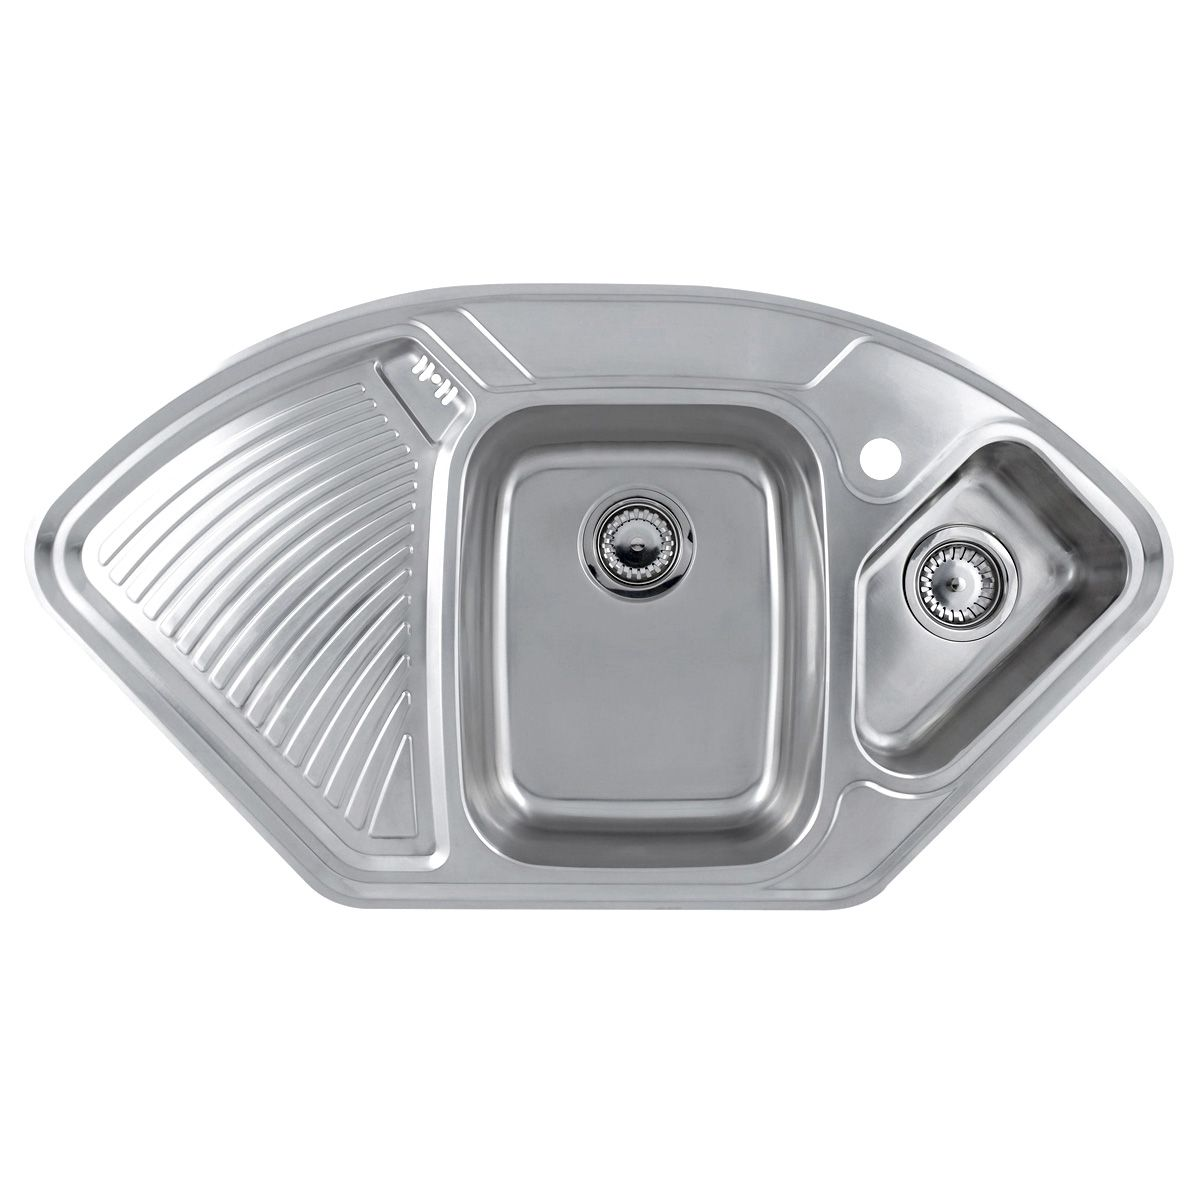 Astracast LAUSANNE Deluxe 1.5 Bowl Corner Kitchen Sink